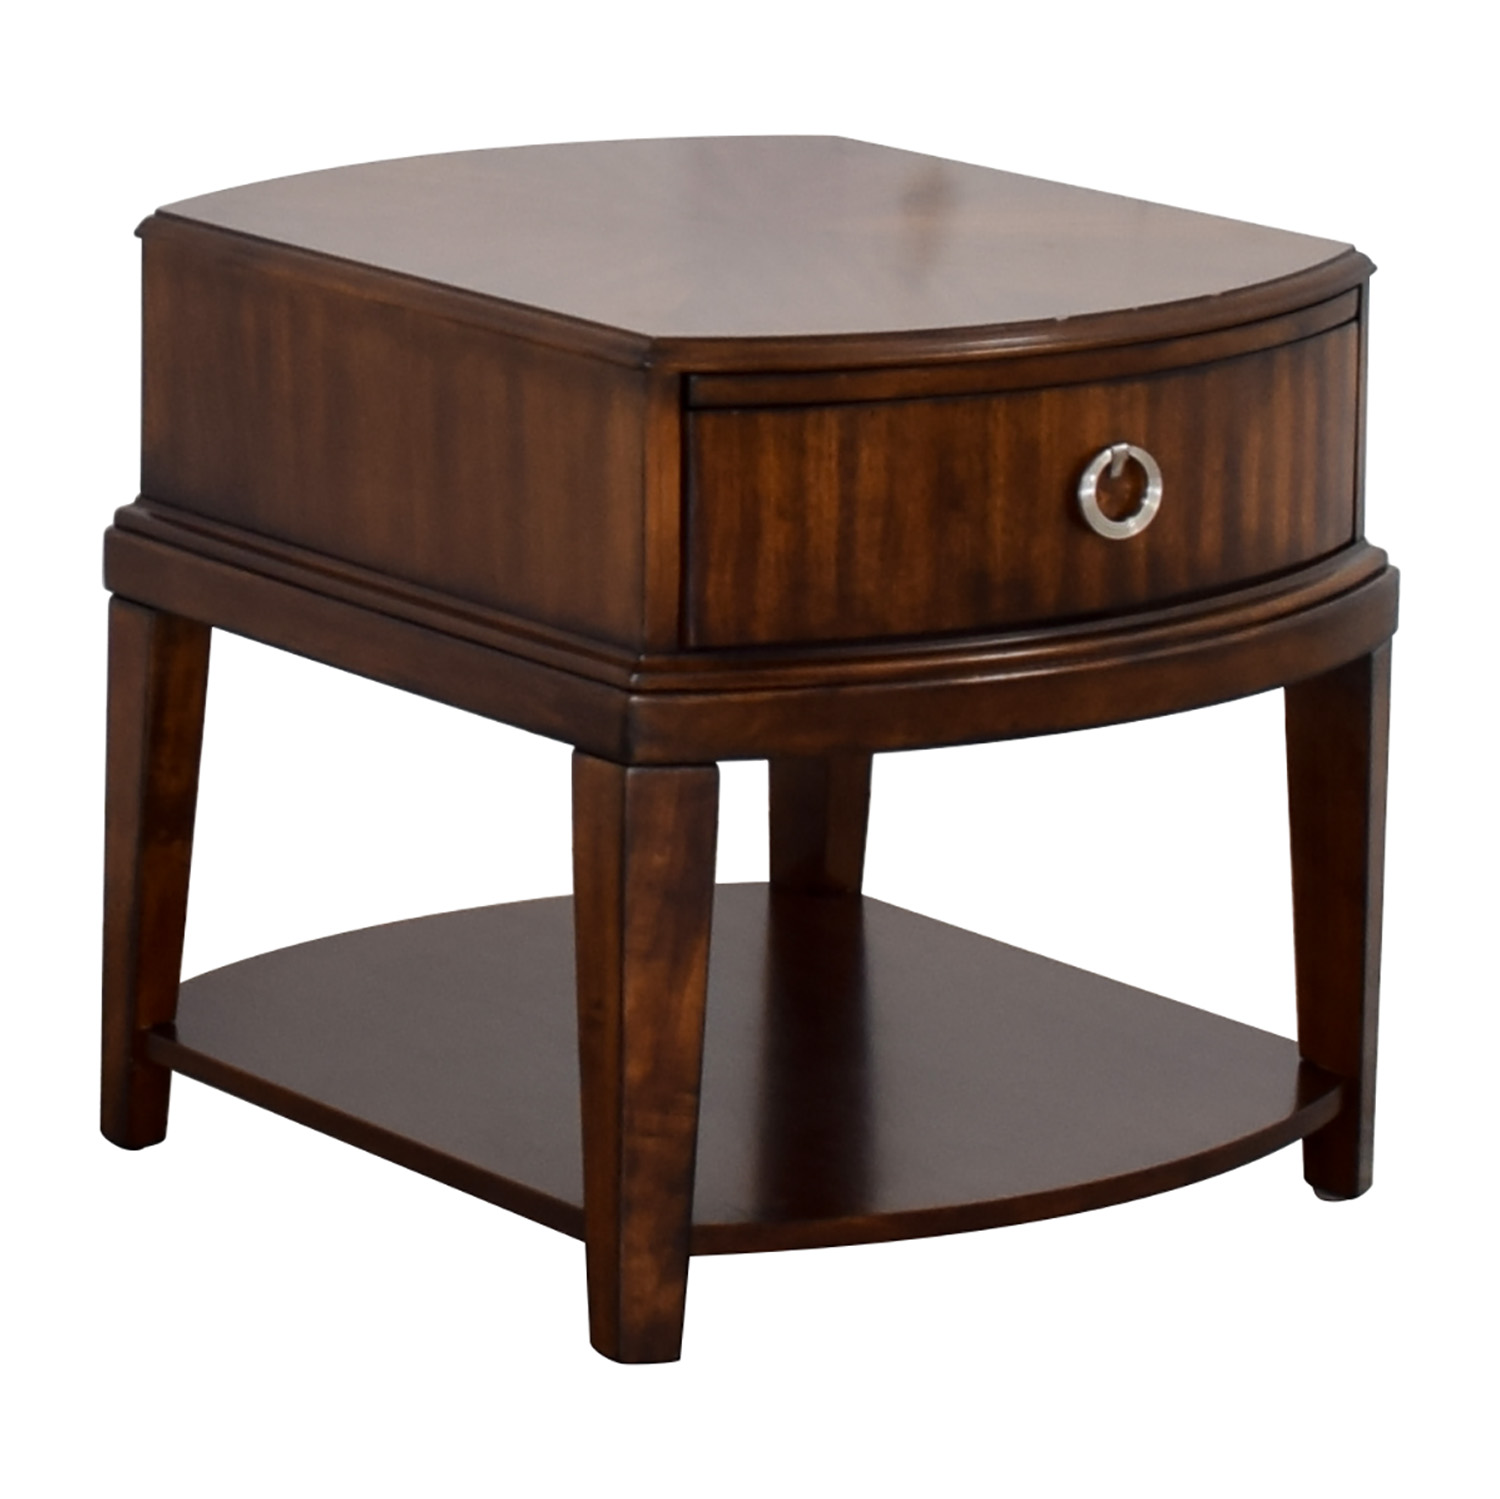 90 Off Havertys Havertys Wood Single Drawer End Table Tables